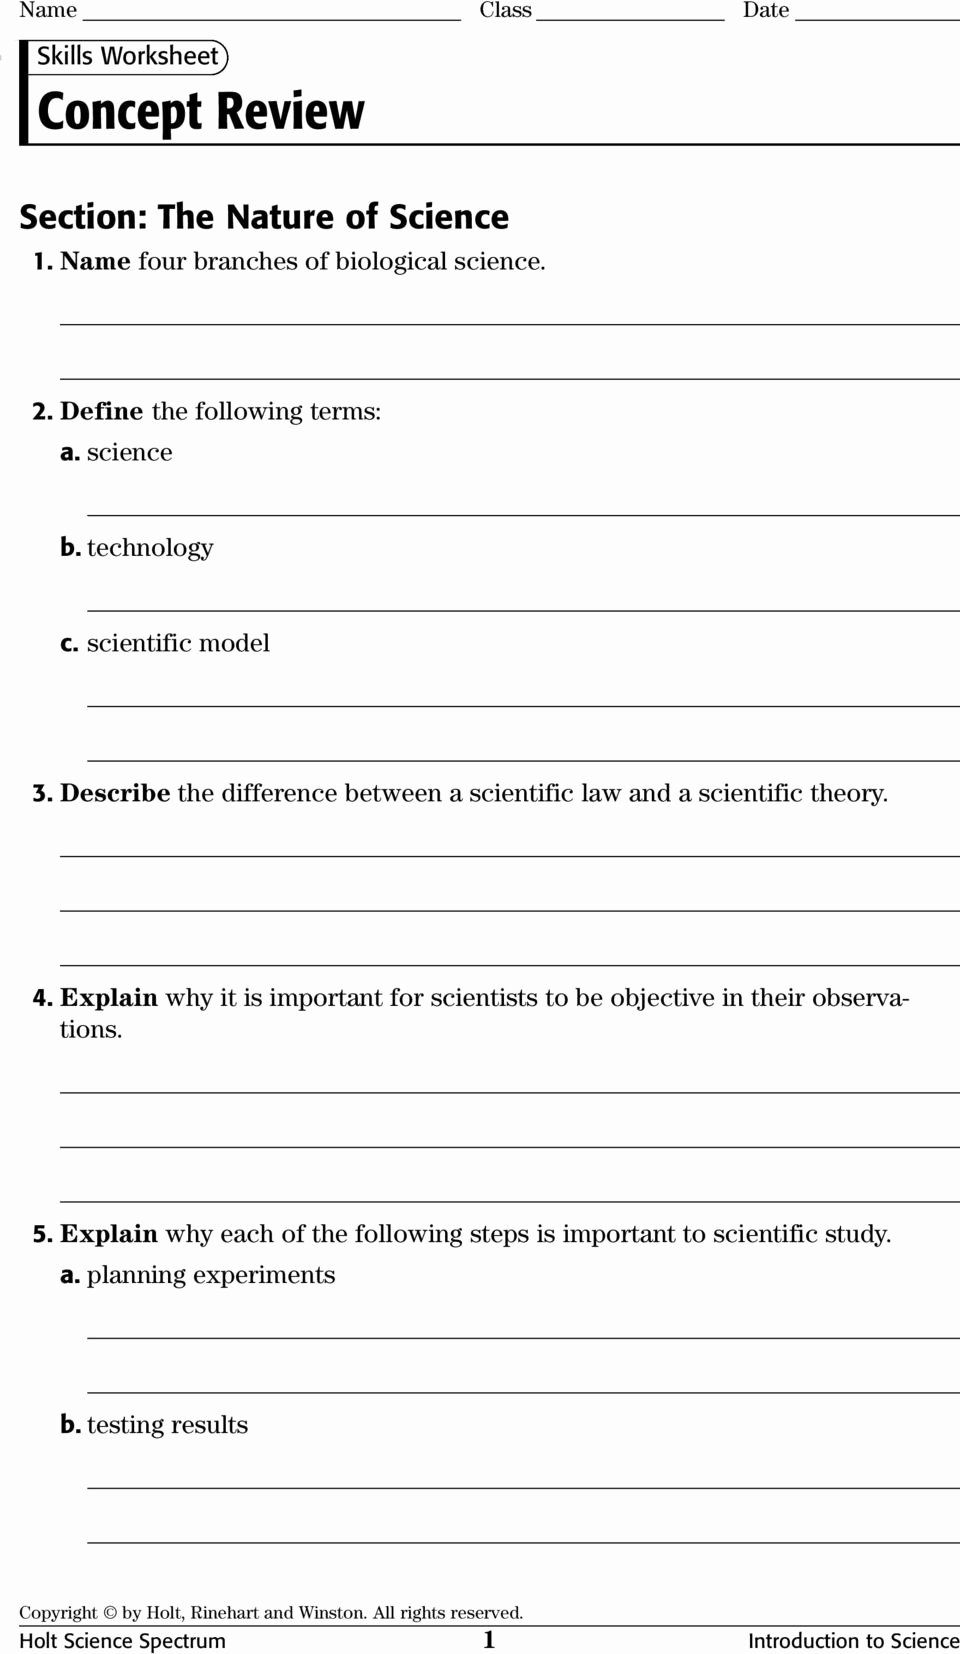 Science Skills Worksheet Answer Key Lovely Physical Science Concept Review Worksheets with Answer